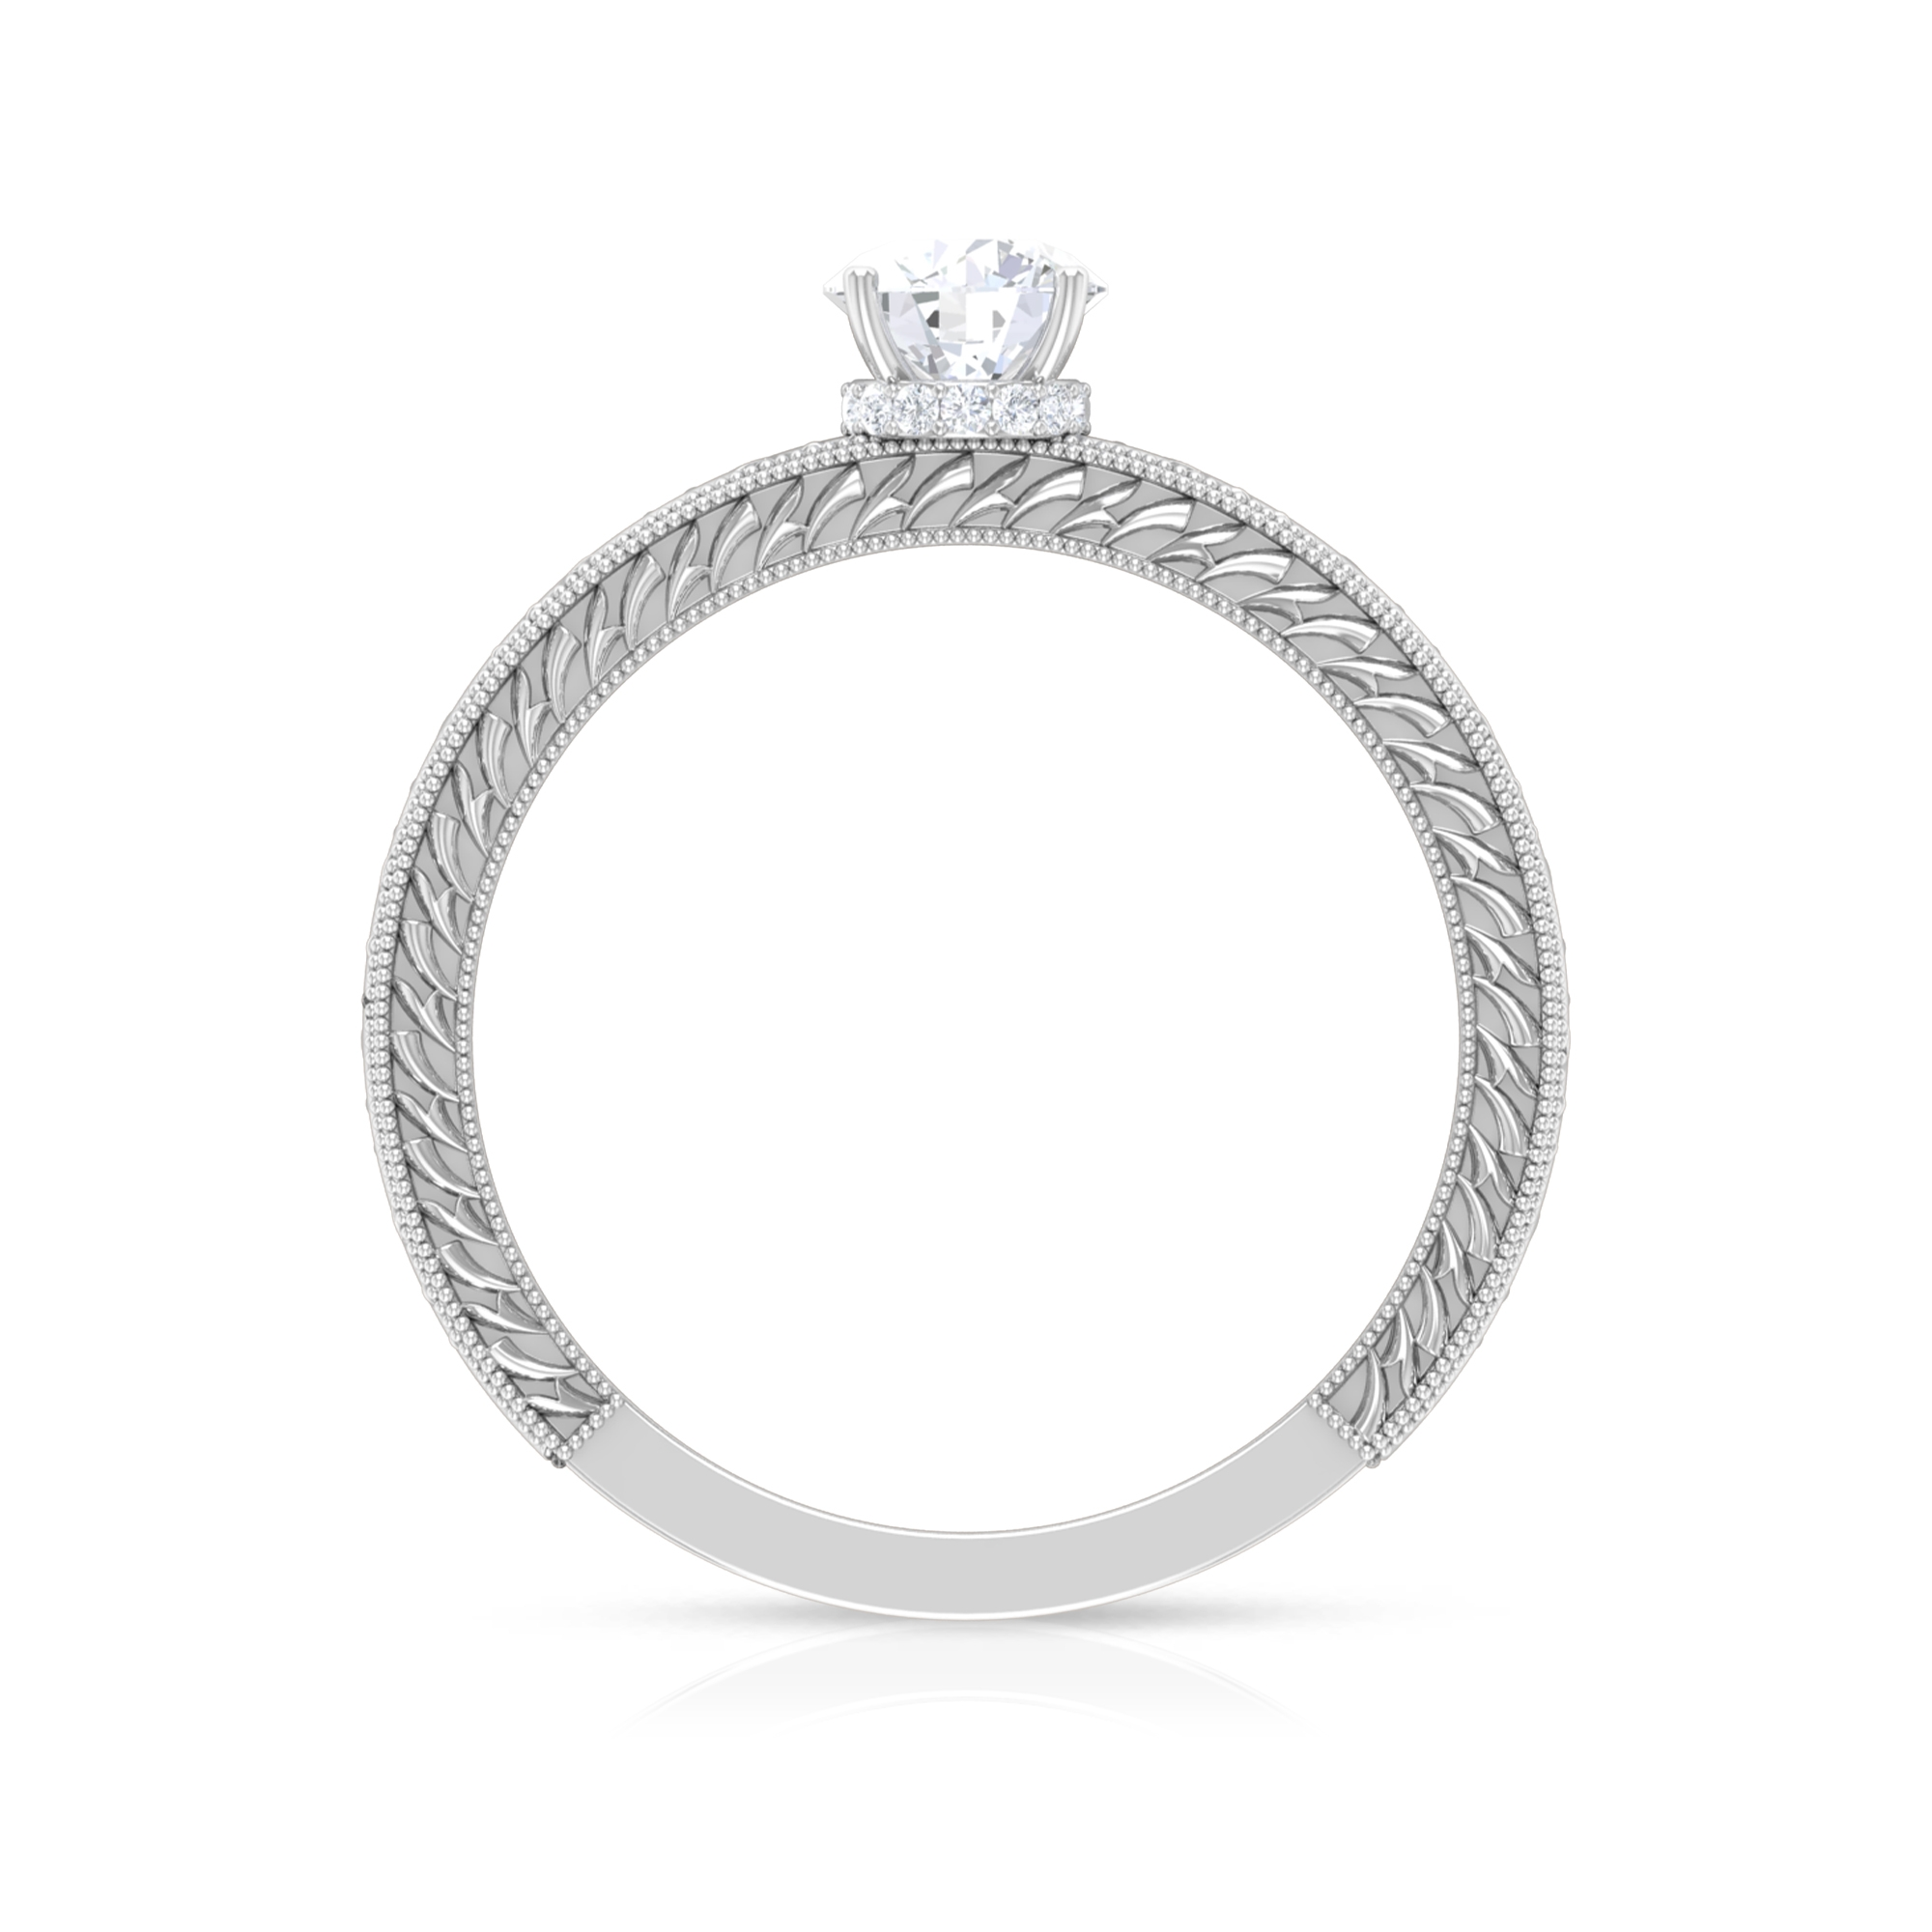 1/2 CT Round Cut Diamond Solitaire Ring with Hidden Halo and Engraved Details